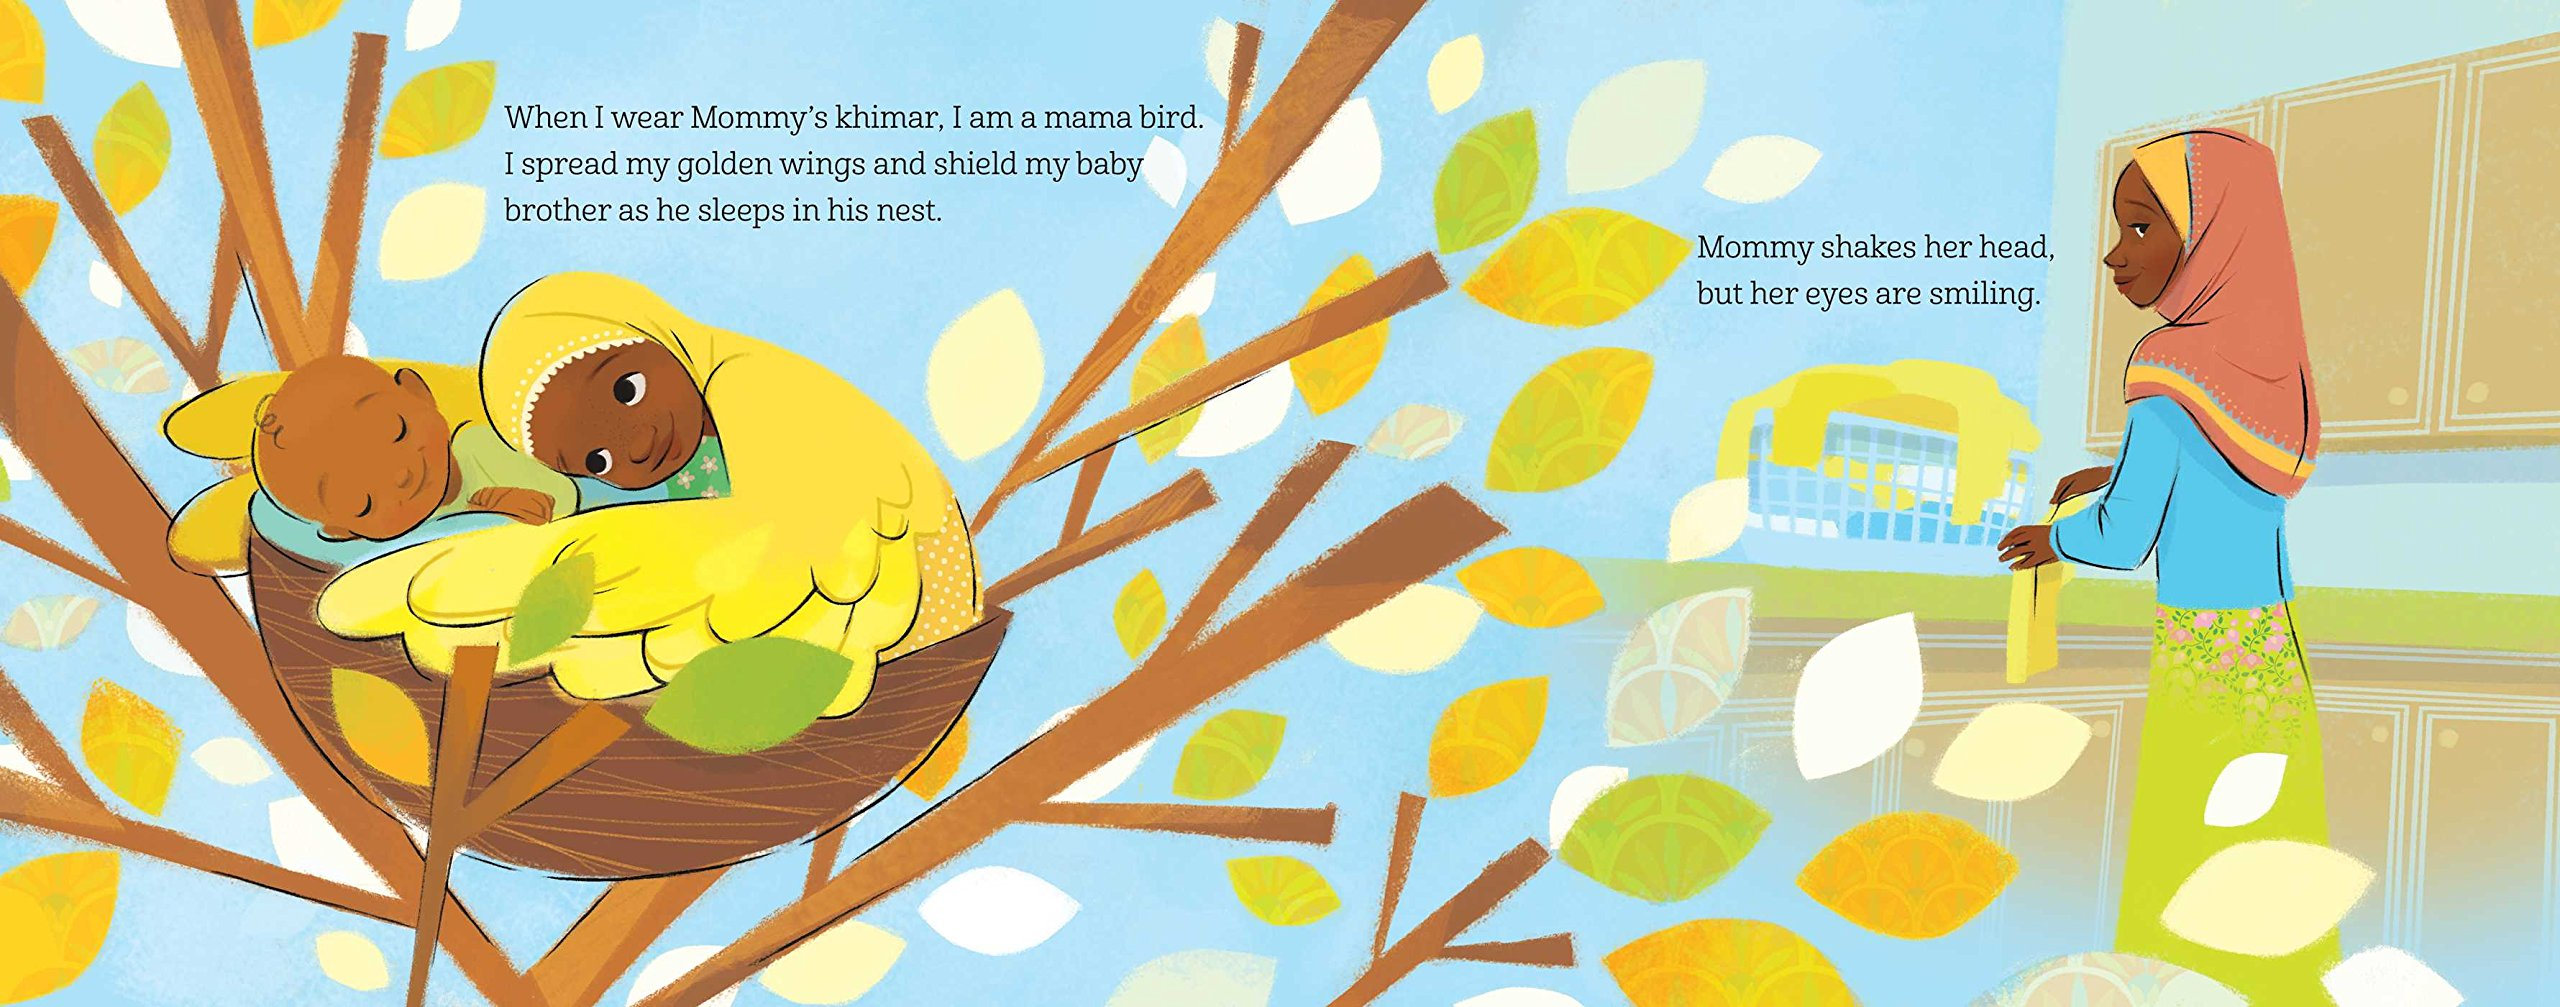 Mommy's Khimar by Salaam Reads / Simon & Schuster Books for Young Readers (Image #7)